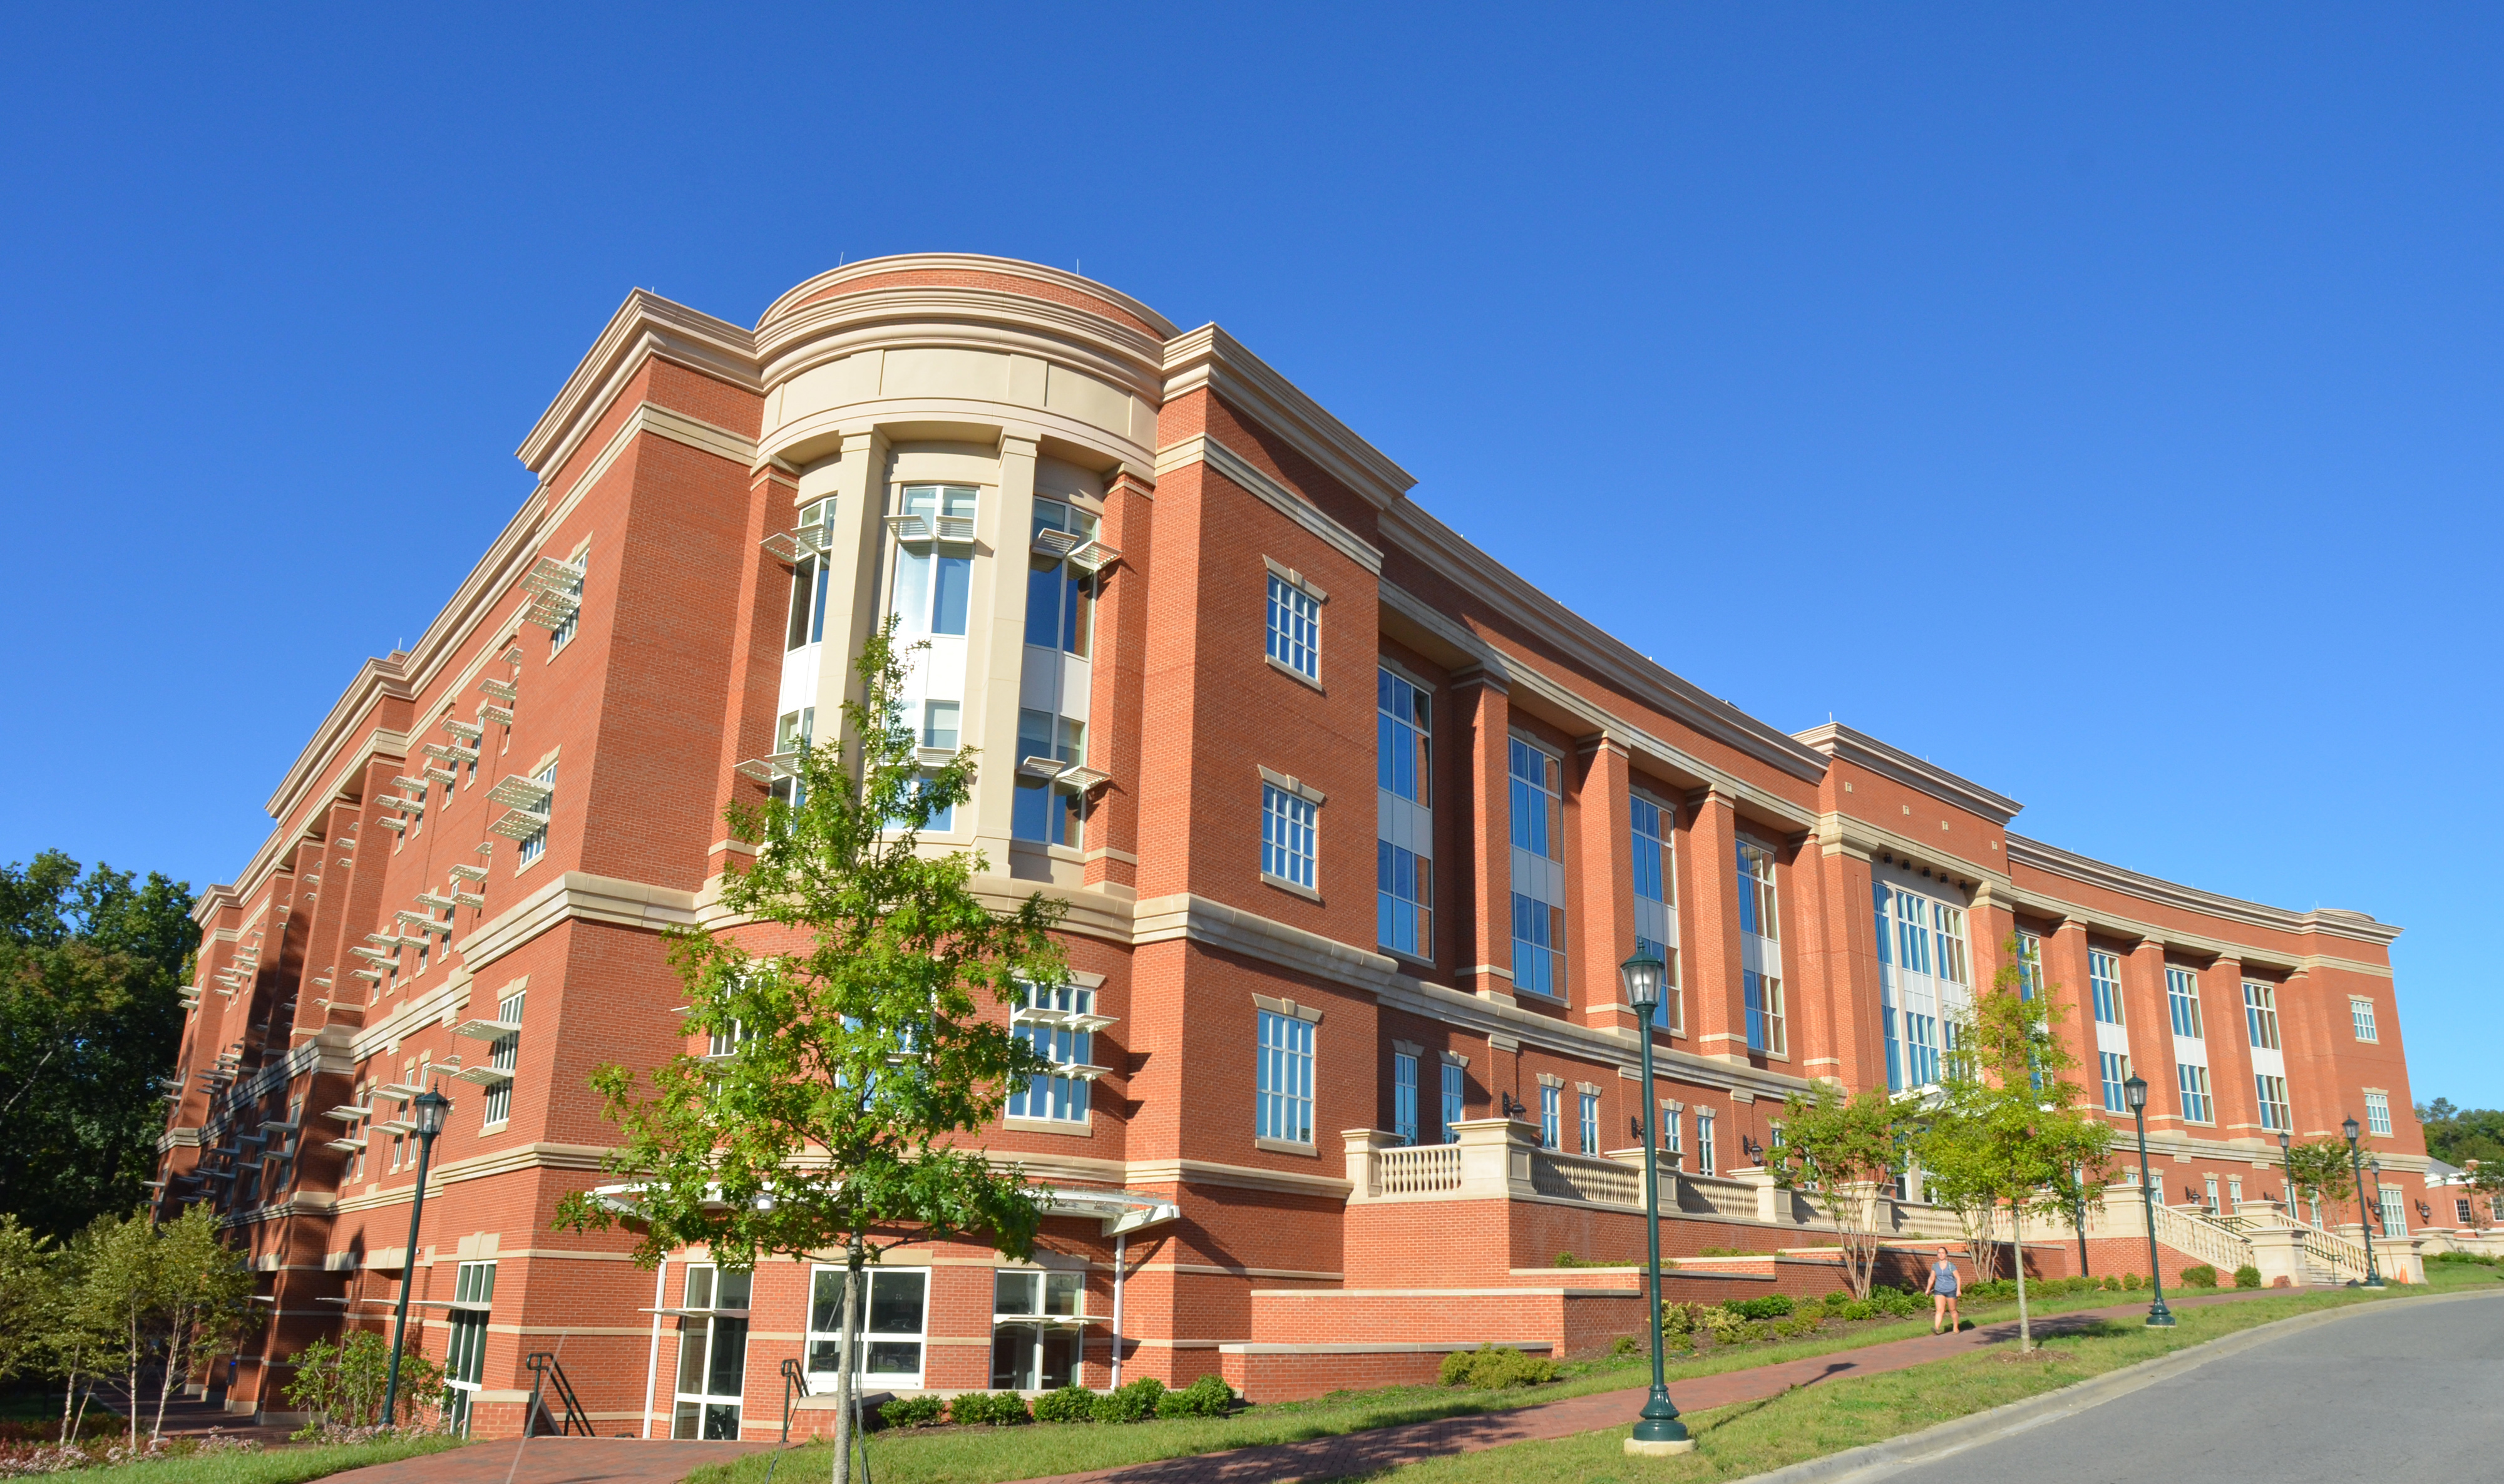 To help meet the meet demand in the energy industry, a new research and software grant from SAS includes energy forecasting technologies for the University of North Carolina at Charlotte's Energy Production Infrastructure Center (EPIC). (Photo: Business Wire)